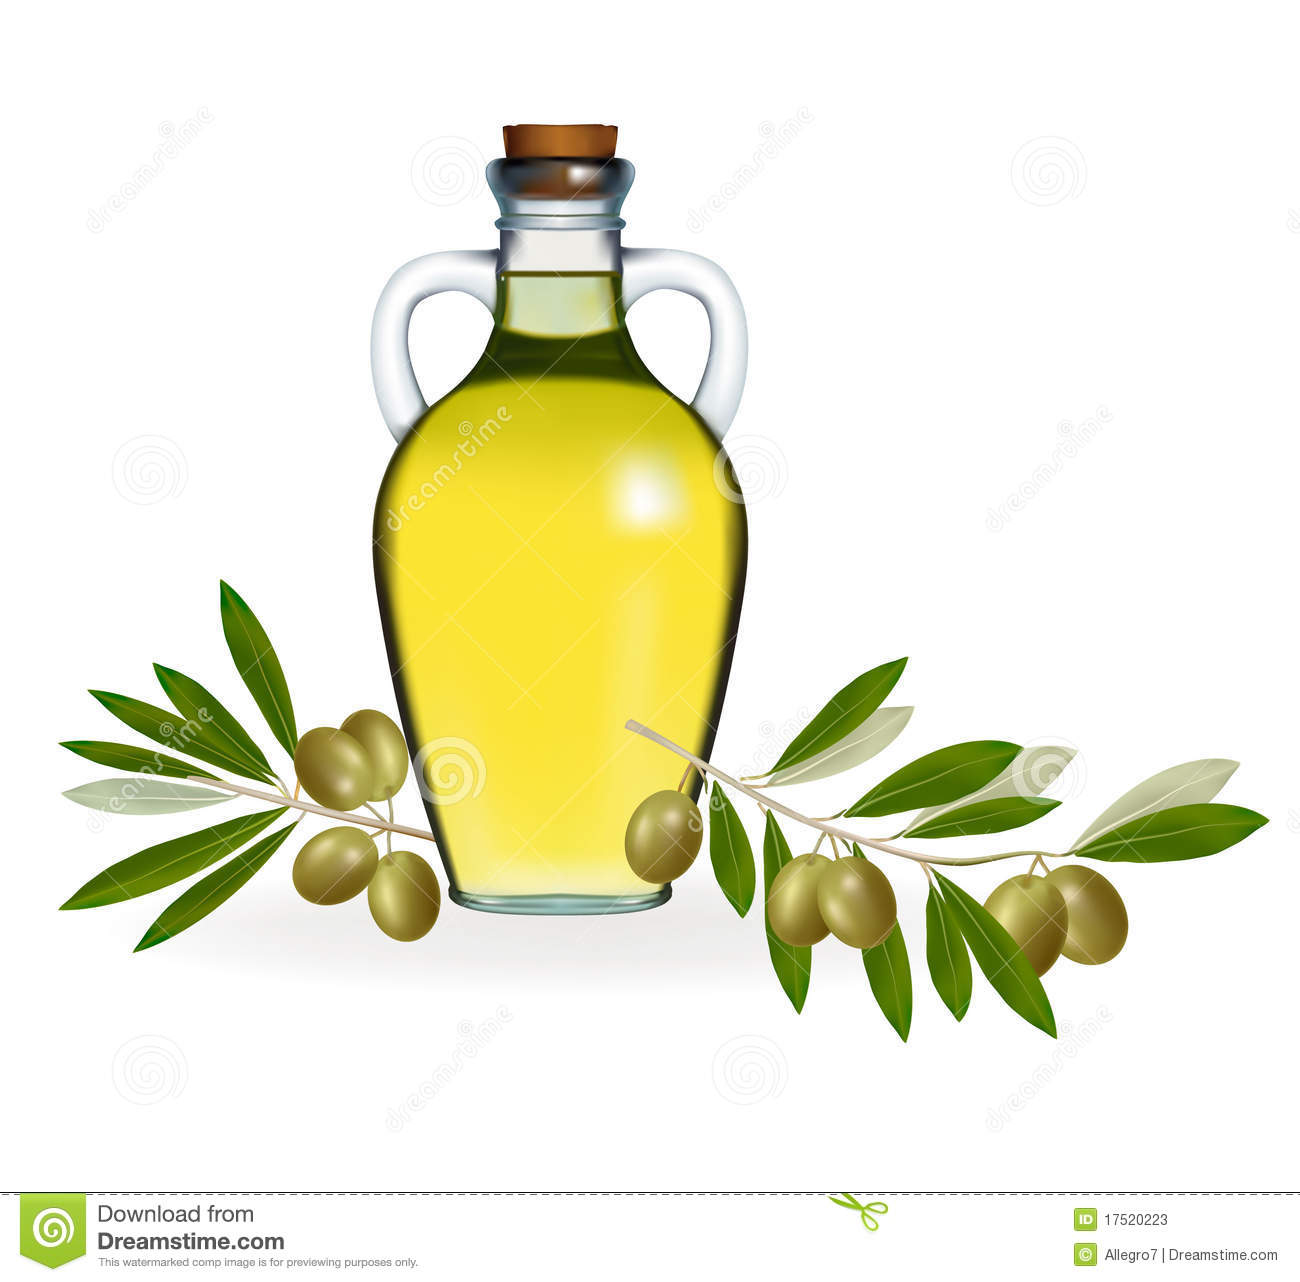 Oil Bottle Clipart - Clipart Suggest